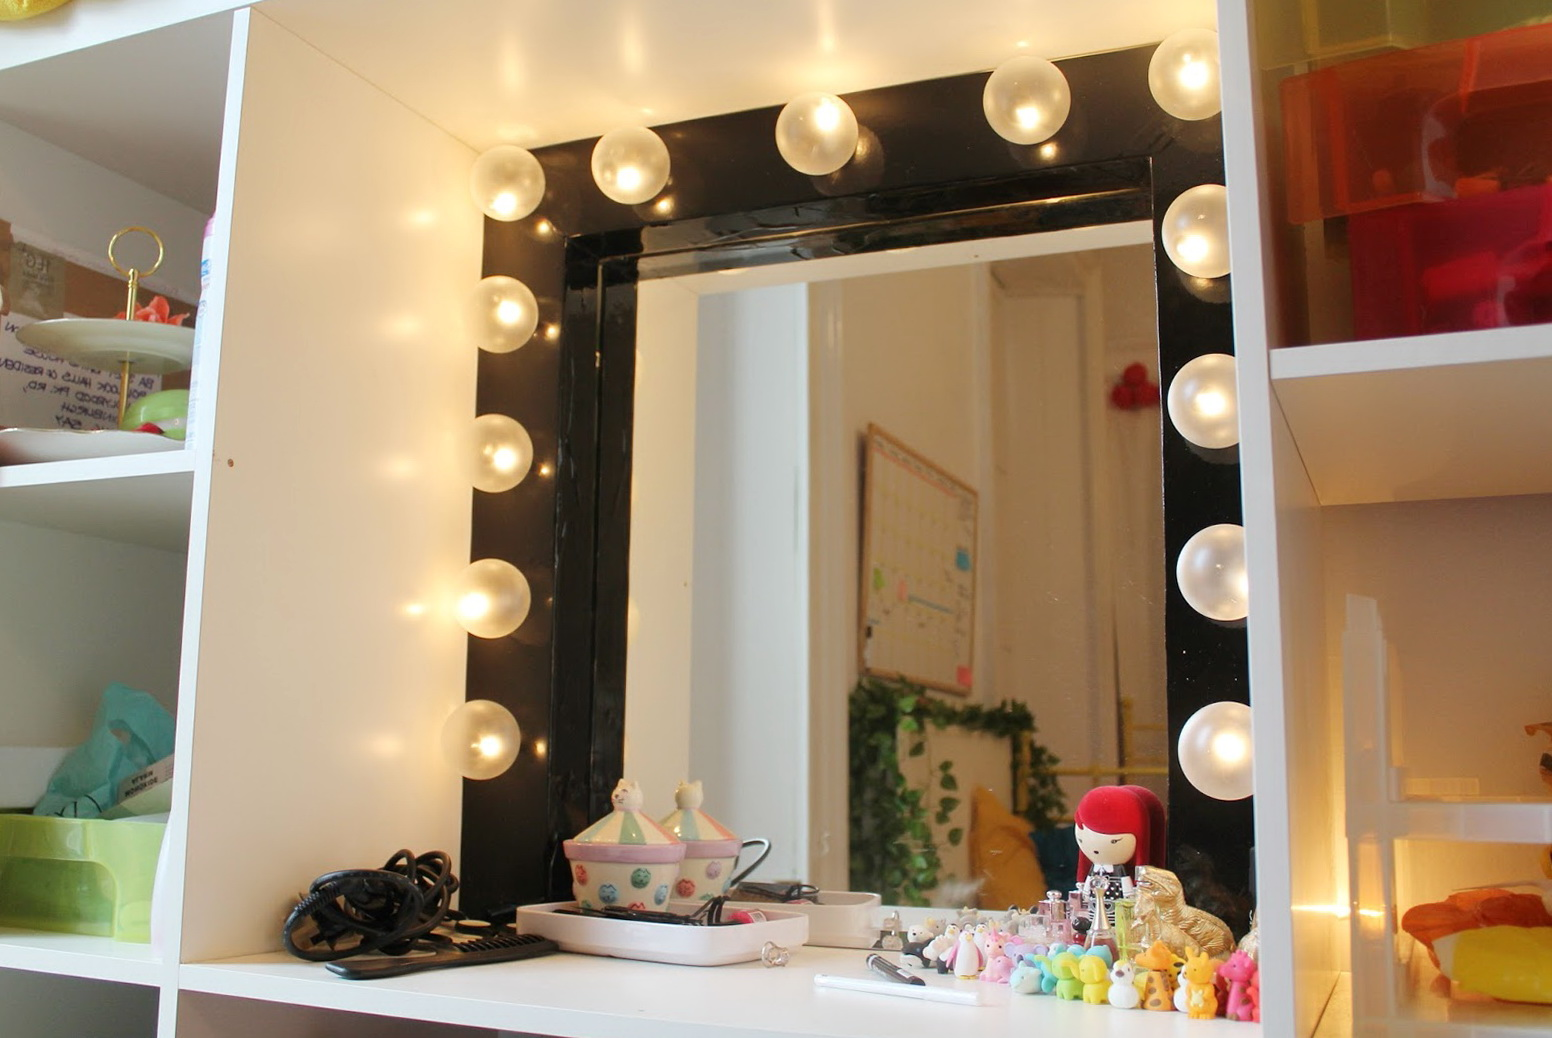 Dressing Room Mirror With Light Bulbs